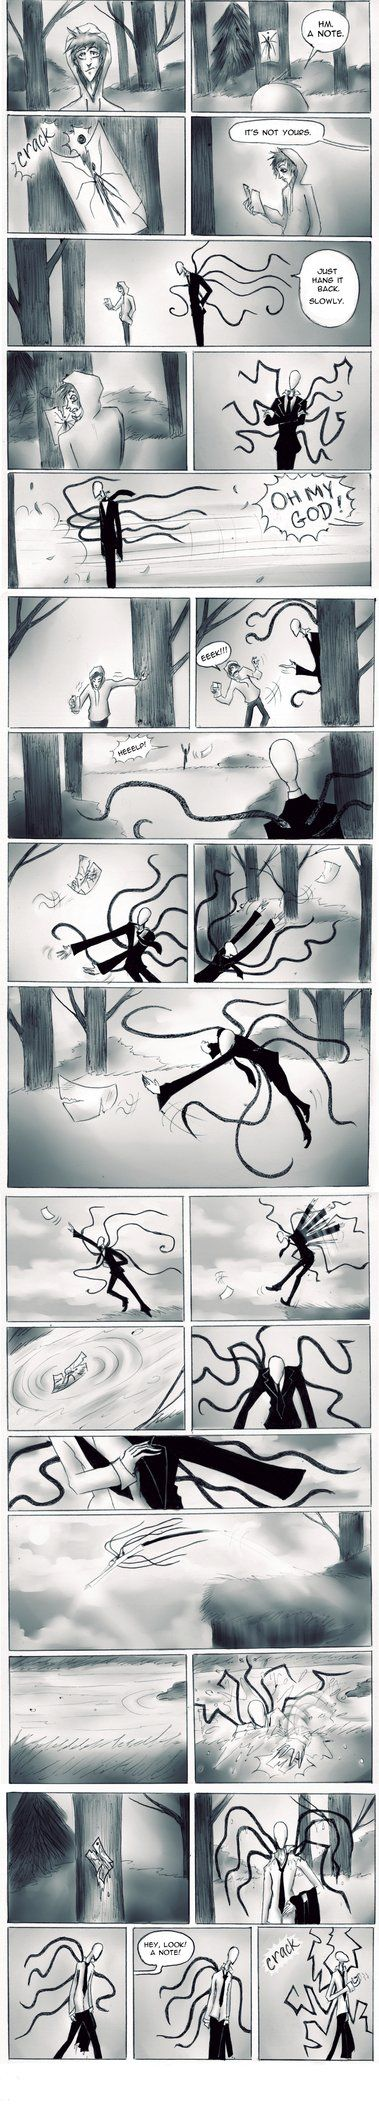 Hey, look! A note! by Paradoxoid on deviantART THIS IS EXACTLY WHAT IVE BEEN TALKING ABOUT, SLENDER HATERS!